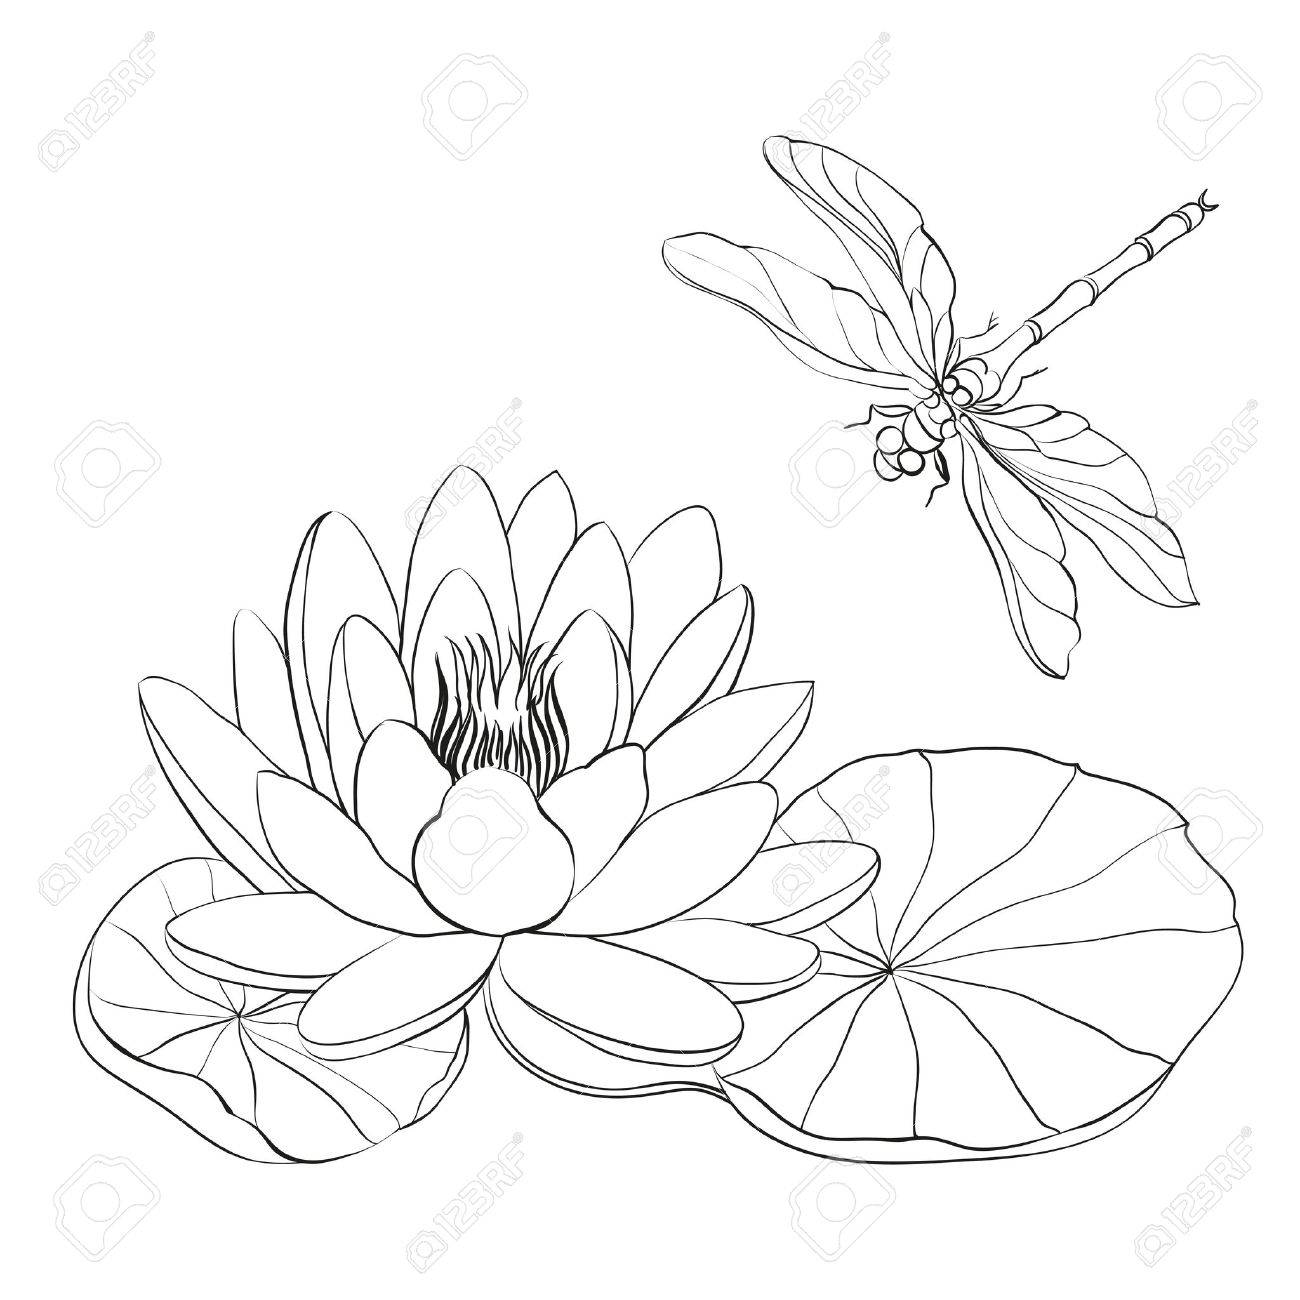 Water lily flower drawing at getdrawings free for personal use 1300x1300 lily cliparts stock vector and royalty free lily illustrations izmirmasajfo